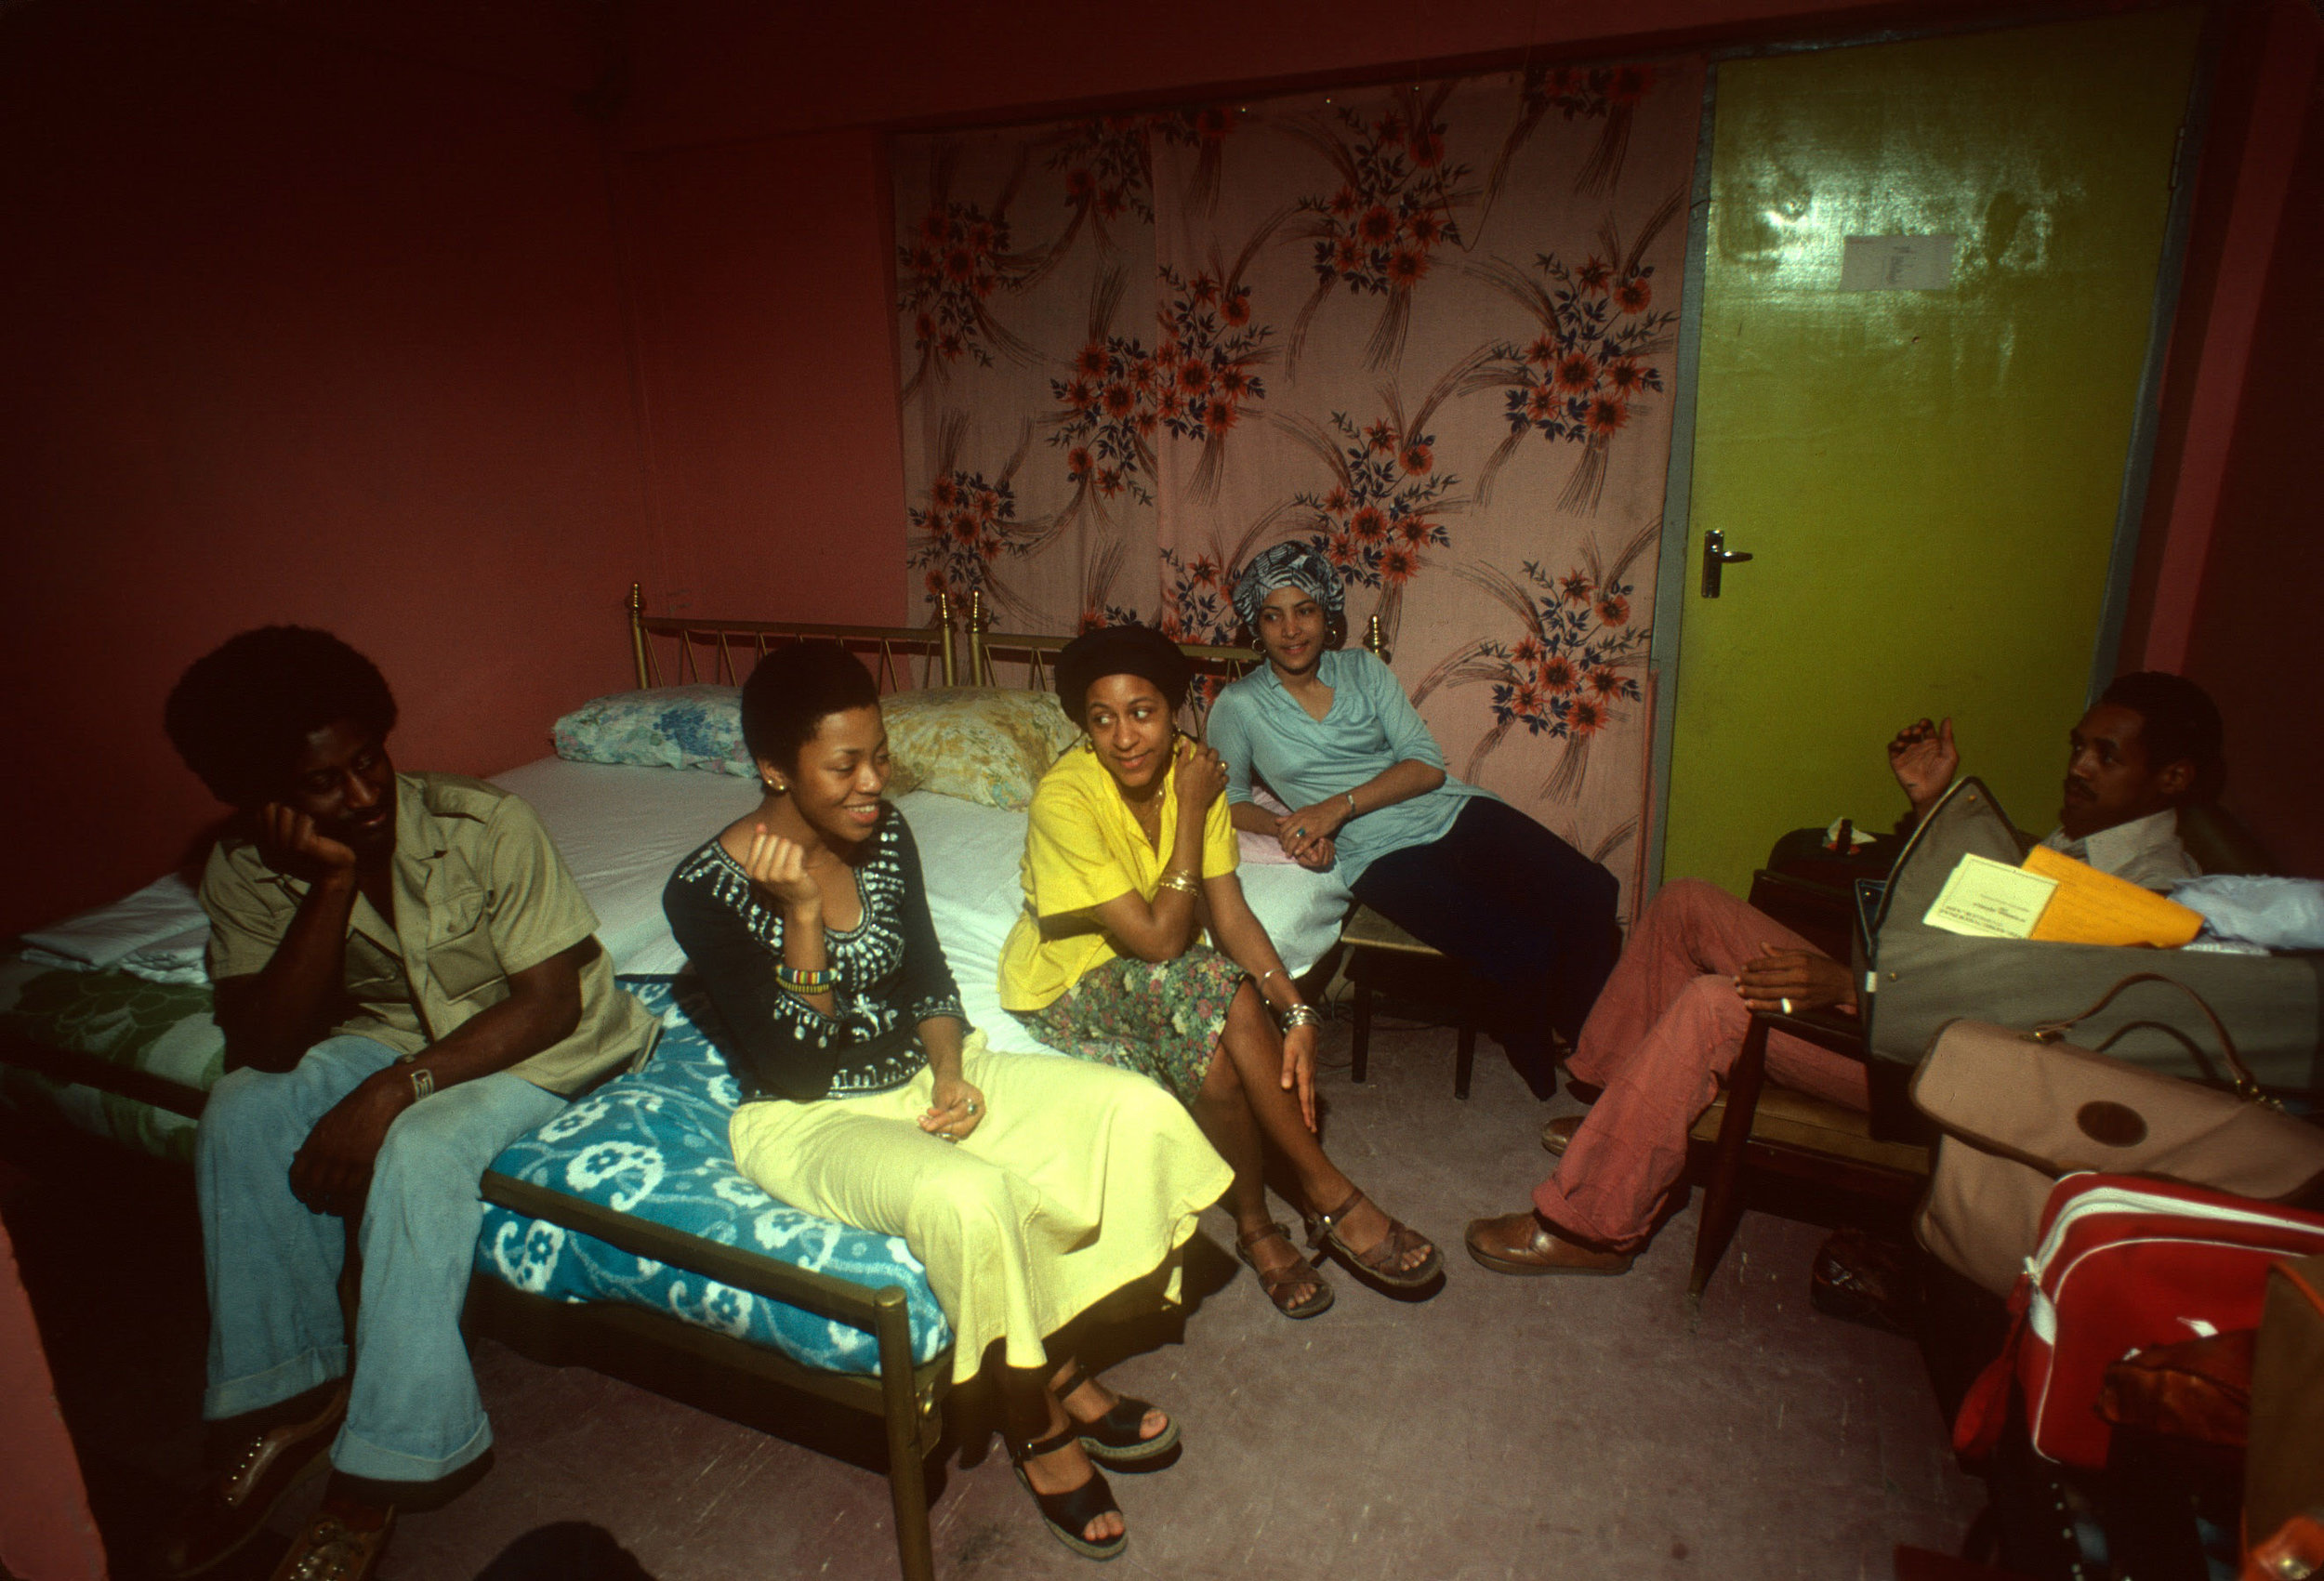 """The Hilltop staff on bed (l. to r., Vance Hawthorne, Vikki Freeman and other Howard students) and old friend, Howard alumnus and our host in Lagos, """"Cincinnati"""" sitting in chair/Calvin Reid"""